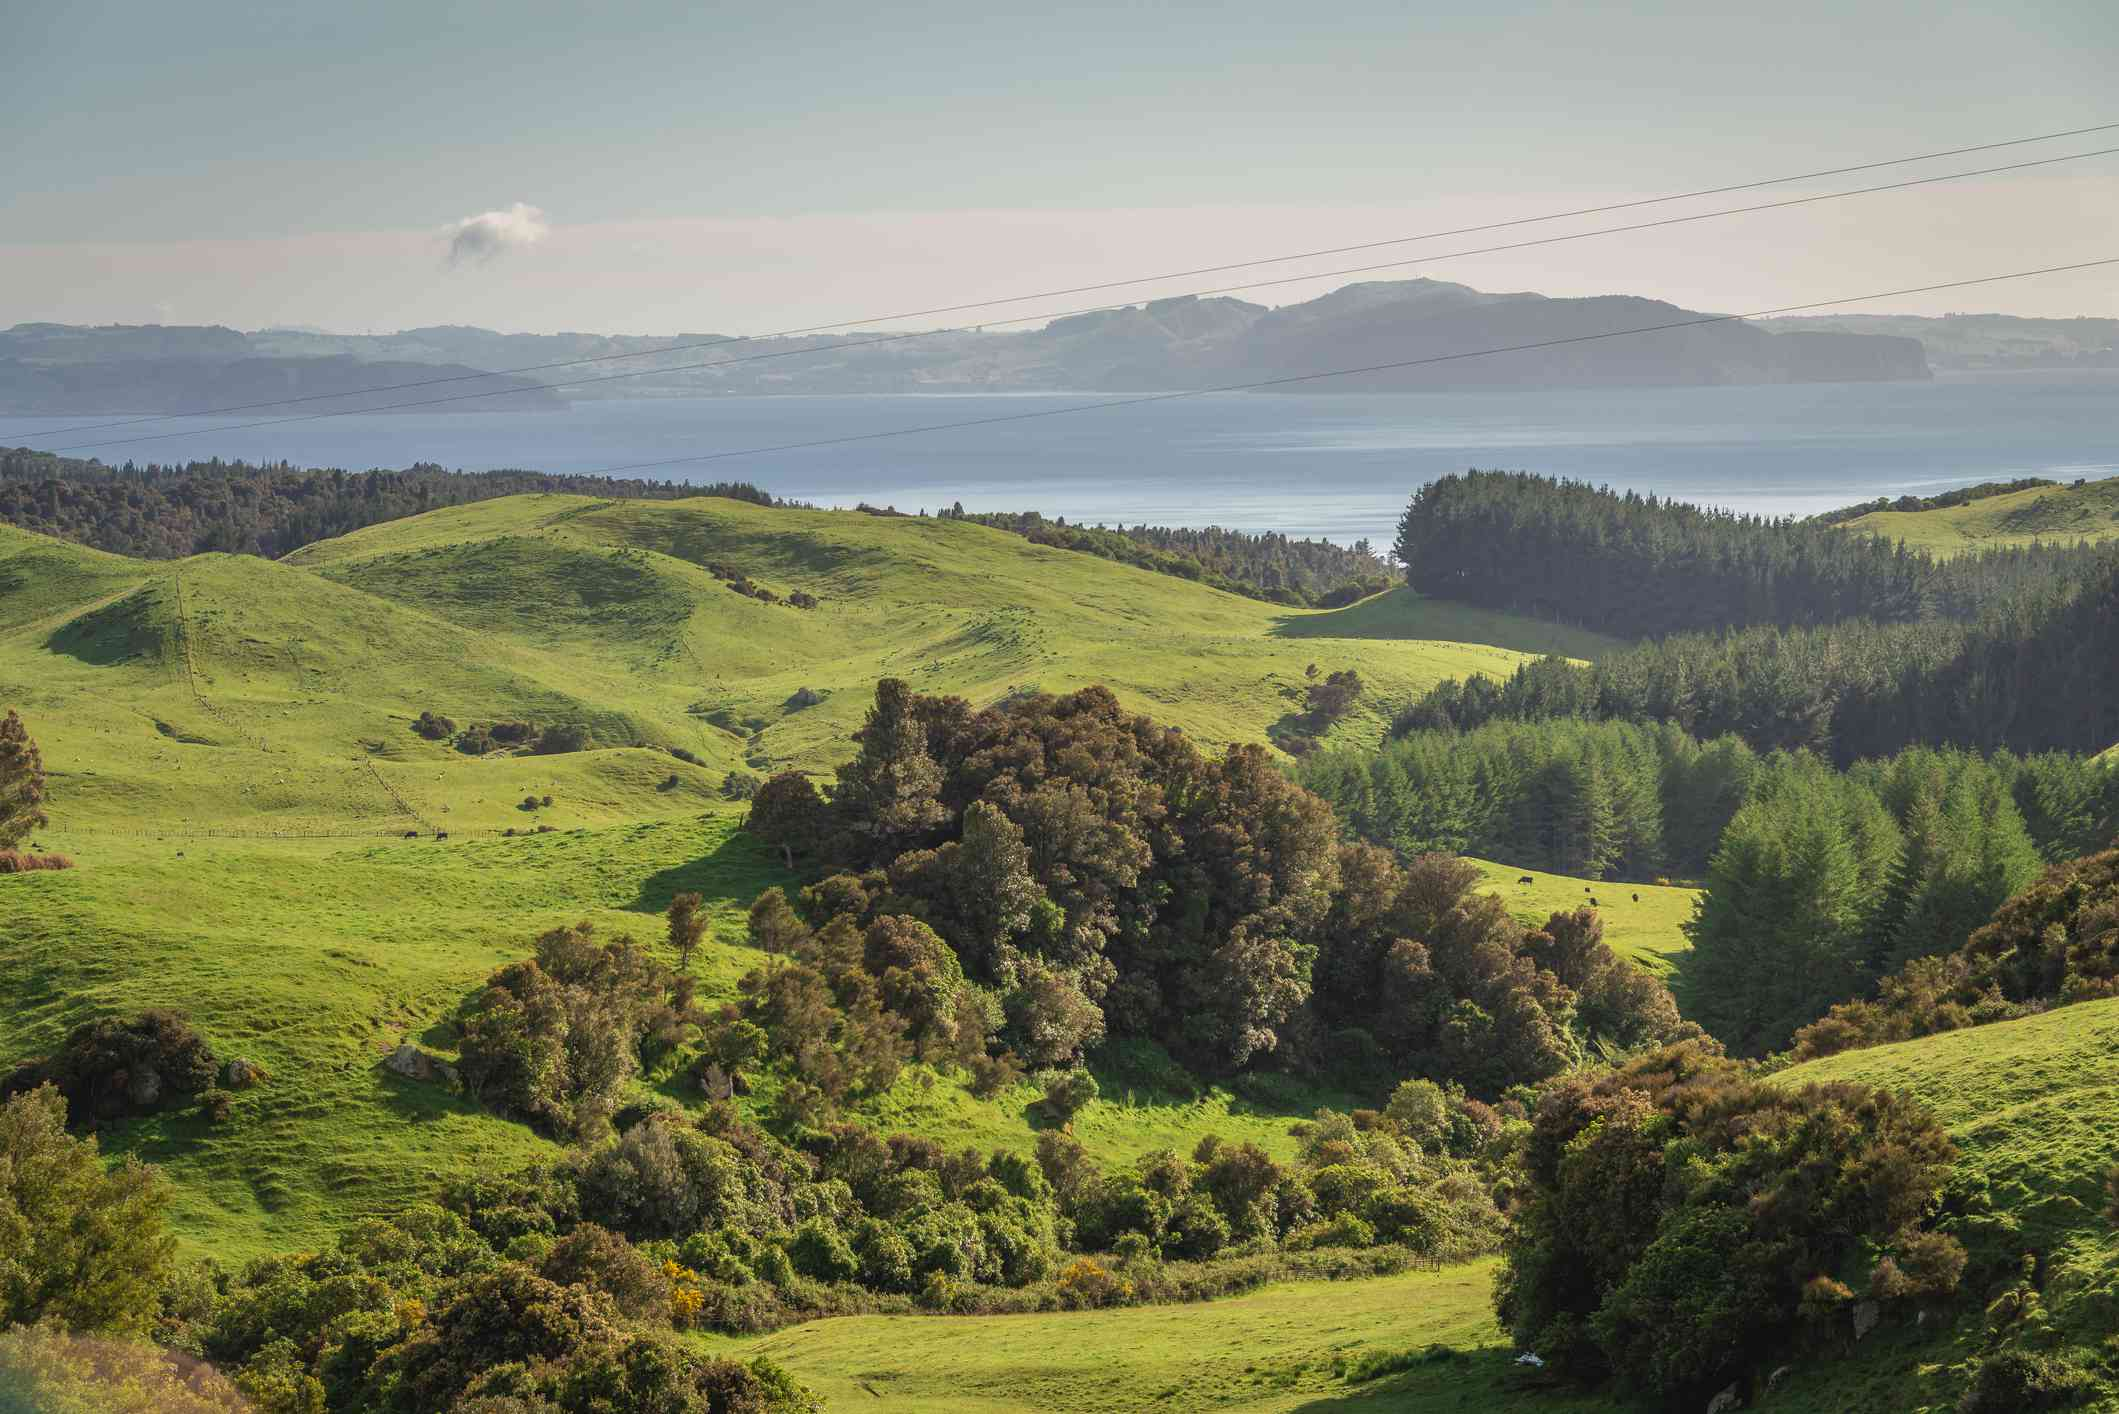 Green hills by Lake Taupo with dense clusters of trees